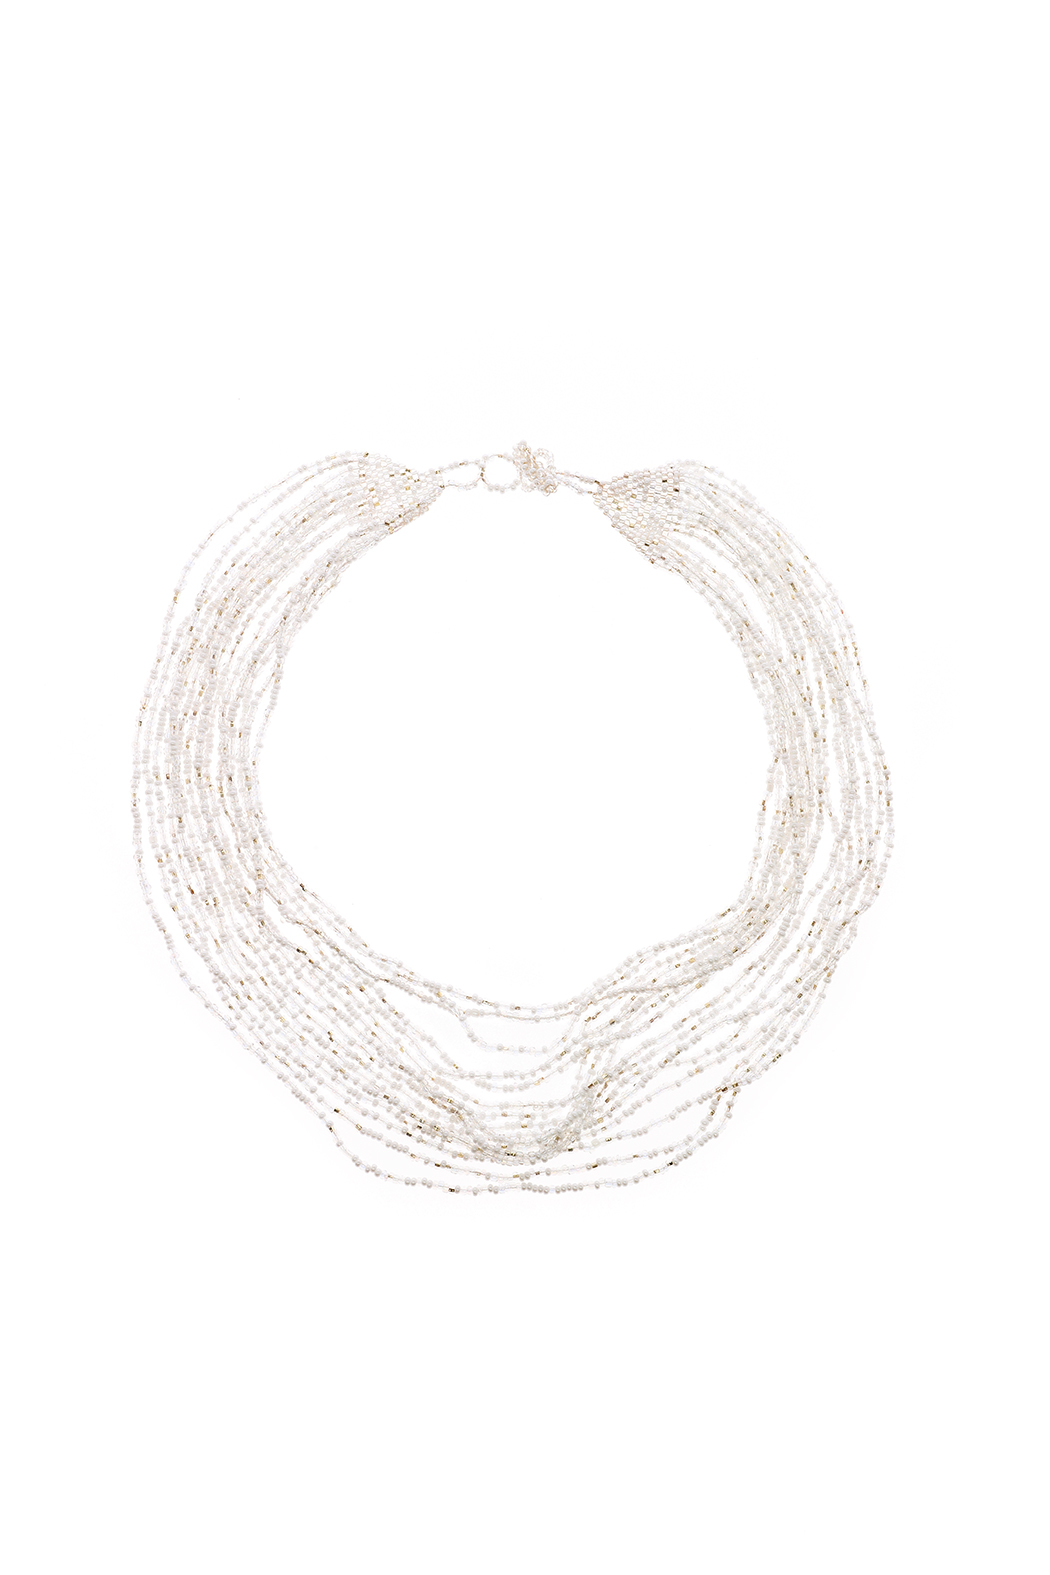 tu-anh Opaque White Glass Necklace - Main Image